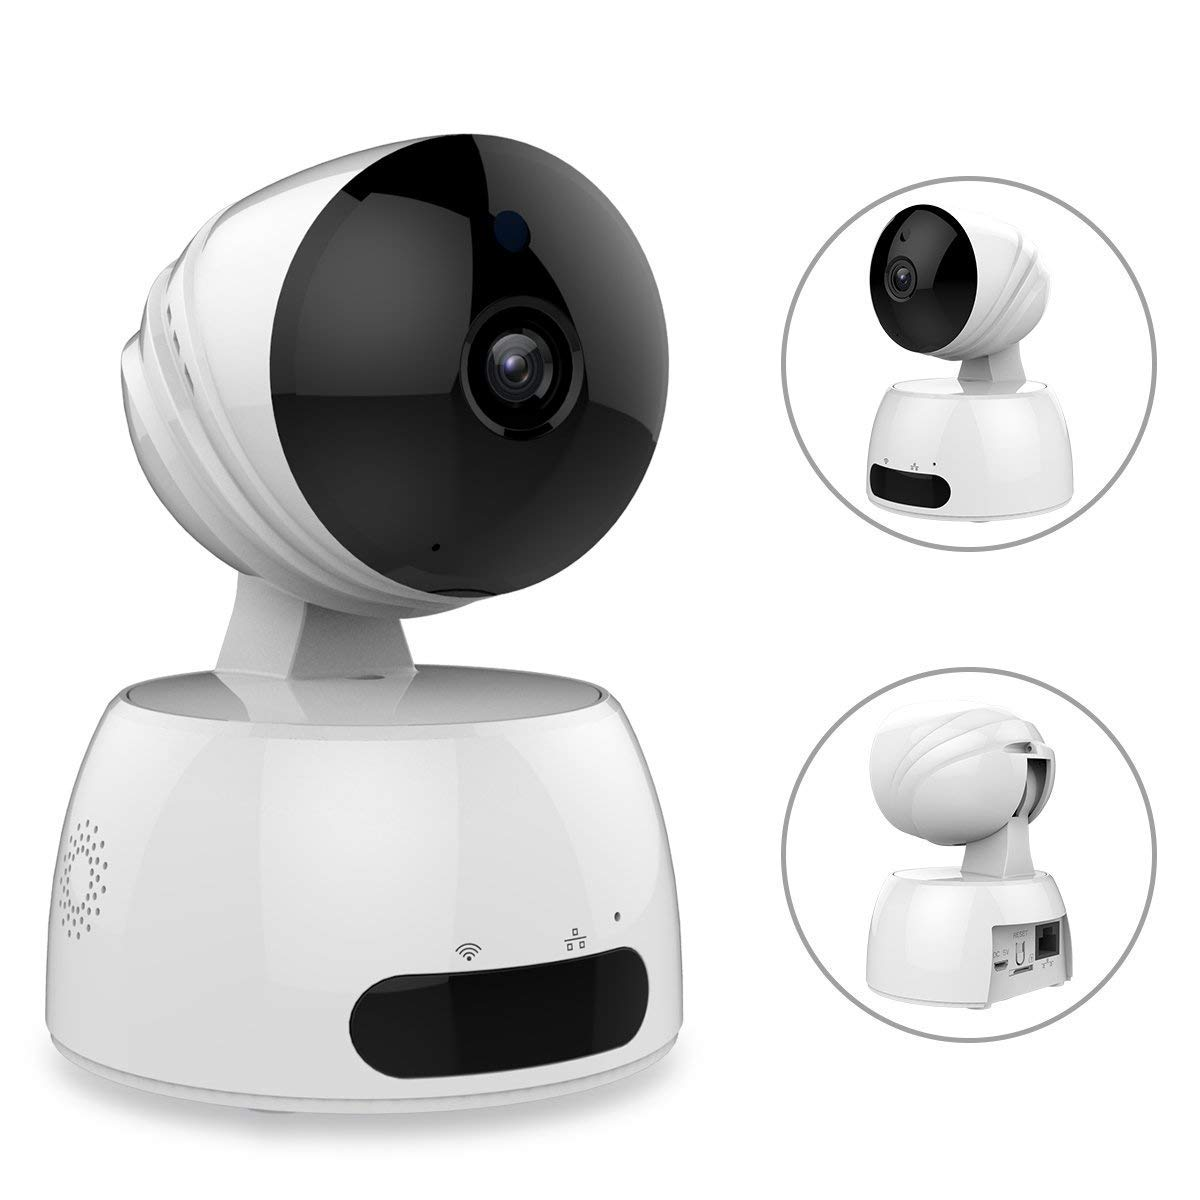 IP Camera Petocase 1.0MP 720P Home Wireless Security Surveillance System with Two Way Audio Remote Indoor Night Vision Pet Baby Monitor